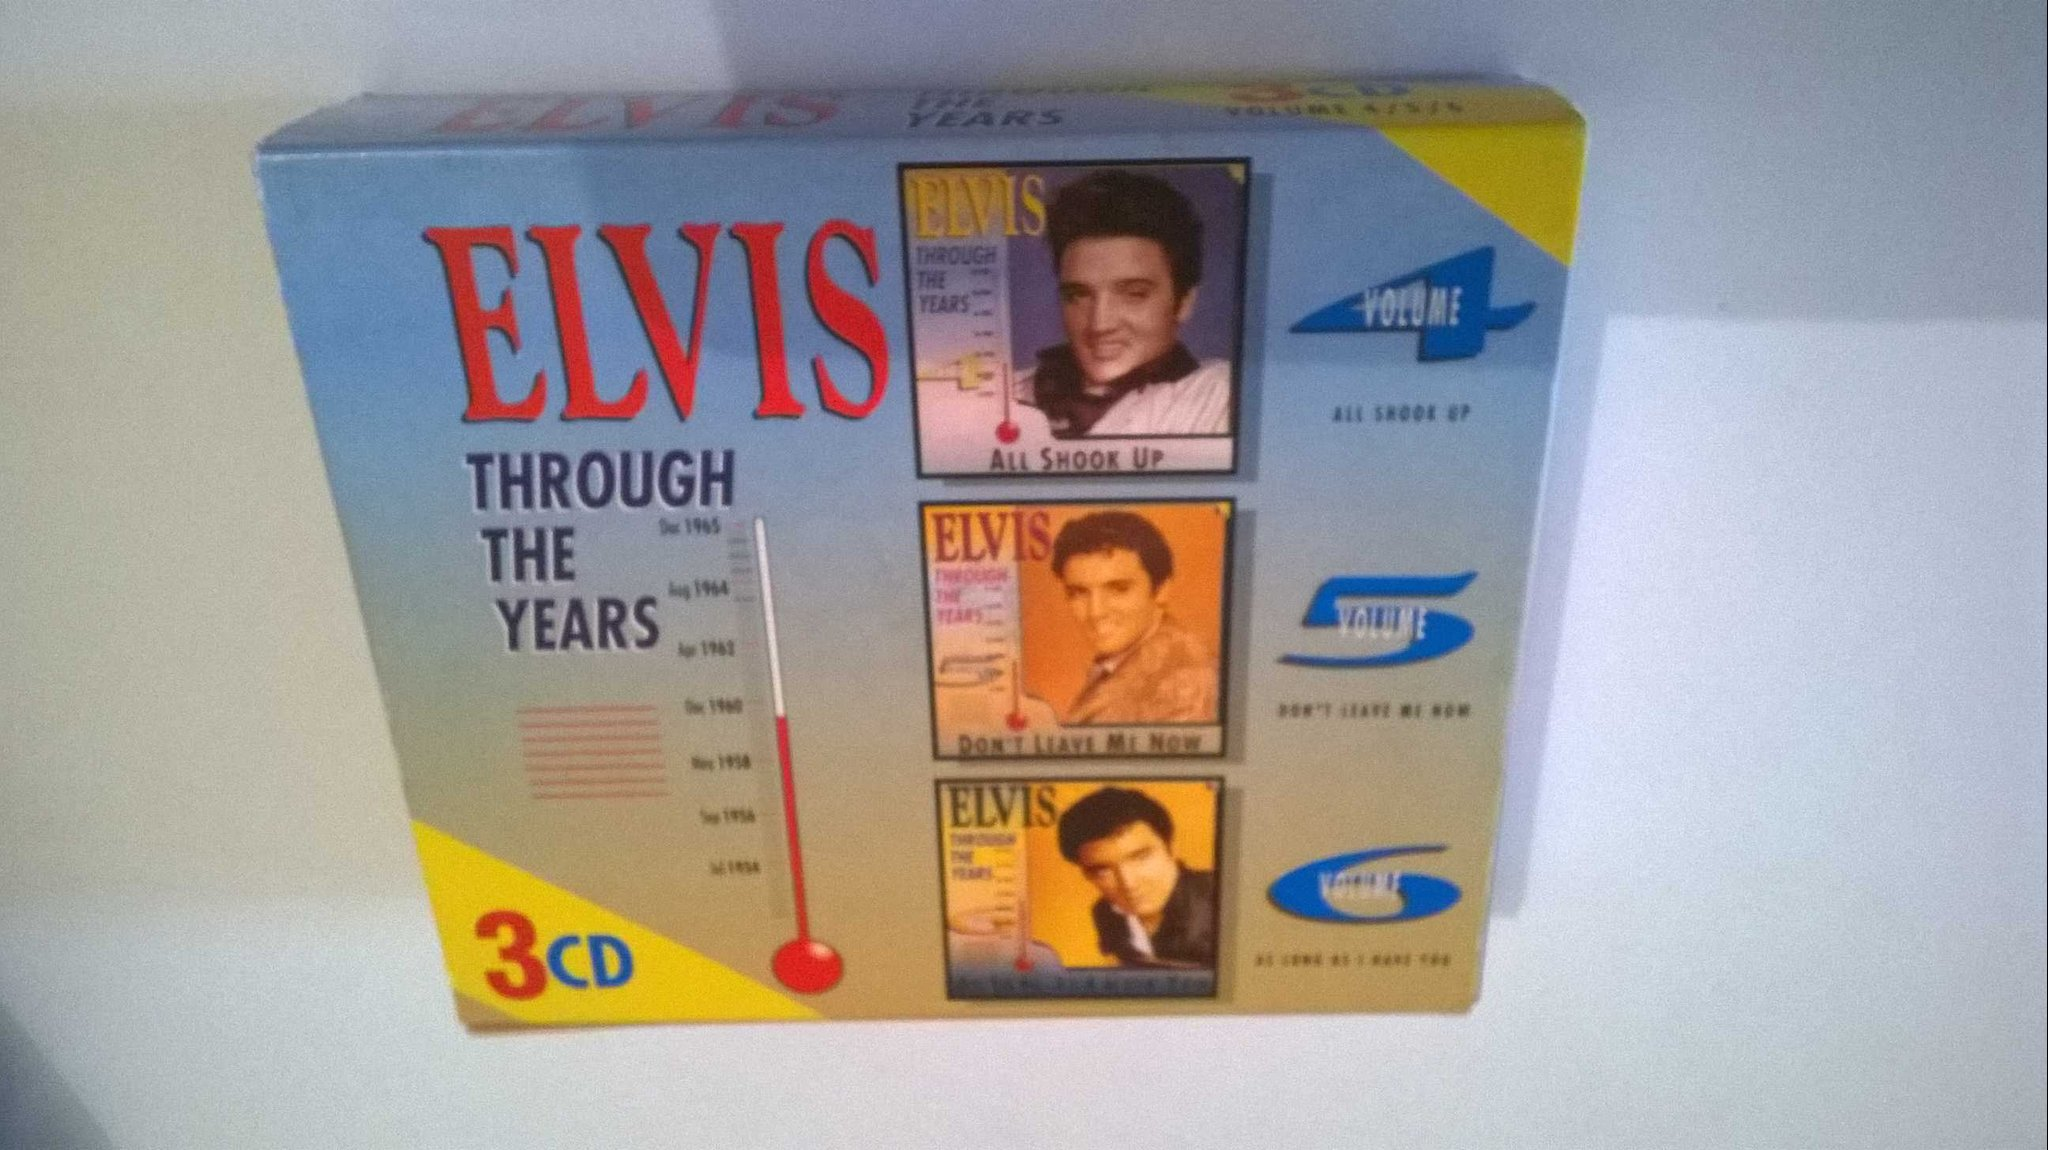 Elvis Presley - Through The Years 3 CD, box set